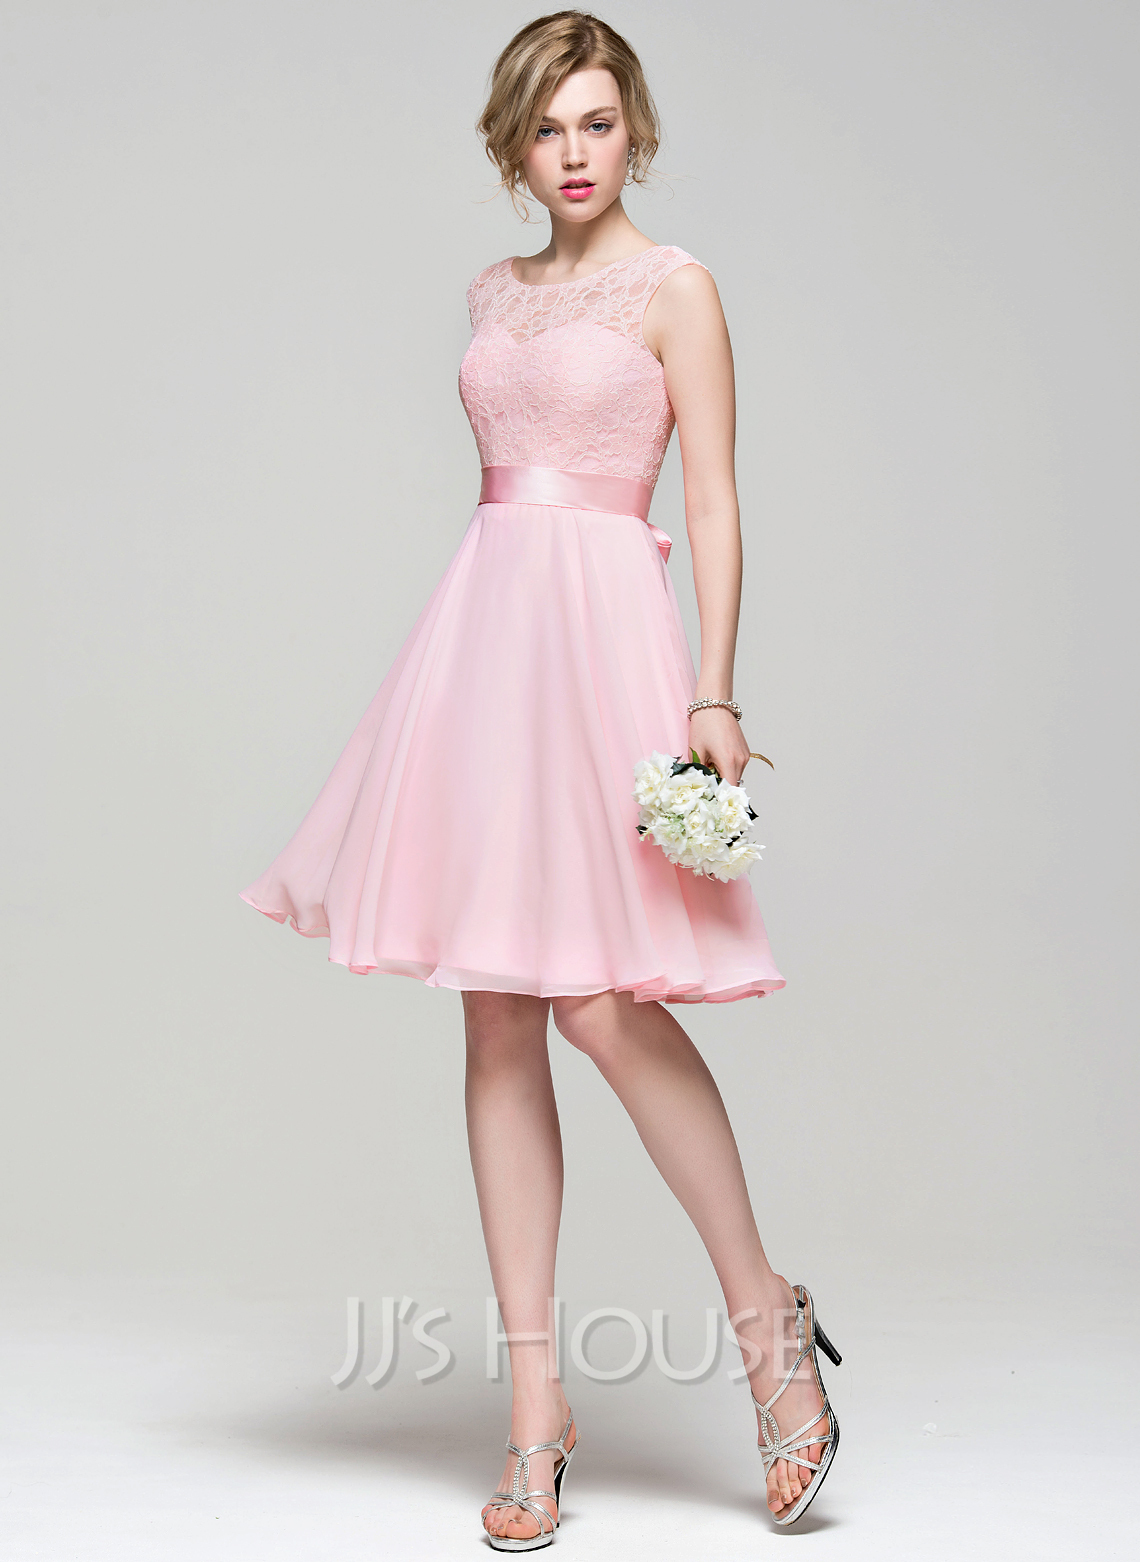 3137da9f1fb90 A-Line/Princess Scoop Neck Knee-Length Chiffon Lace Bridesmaid Dress With  Bow. Loading zoom